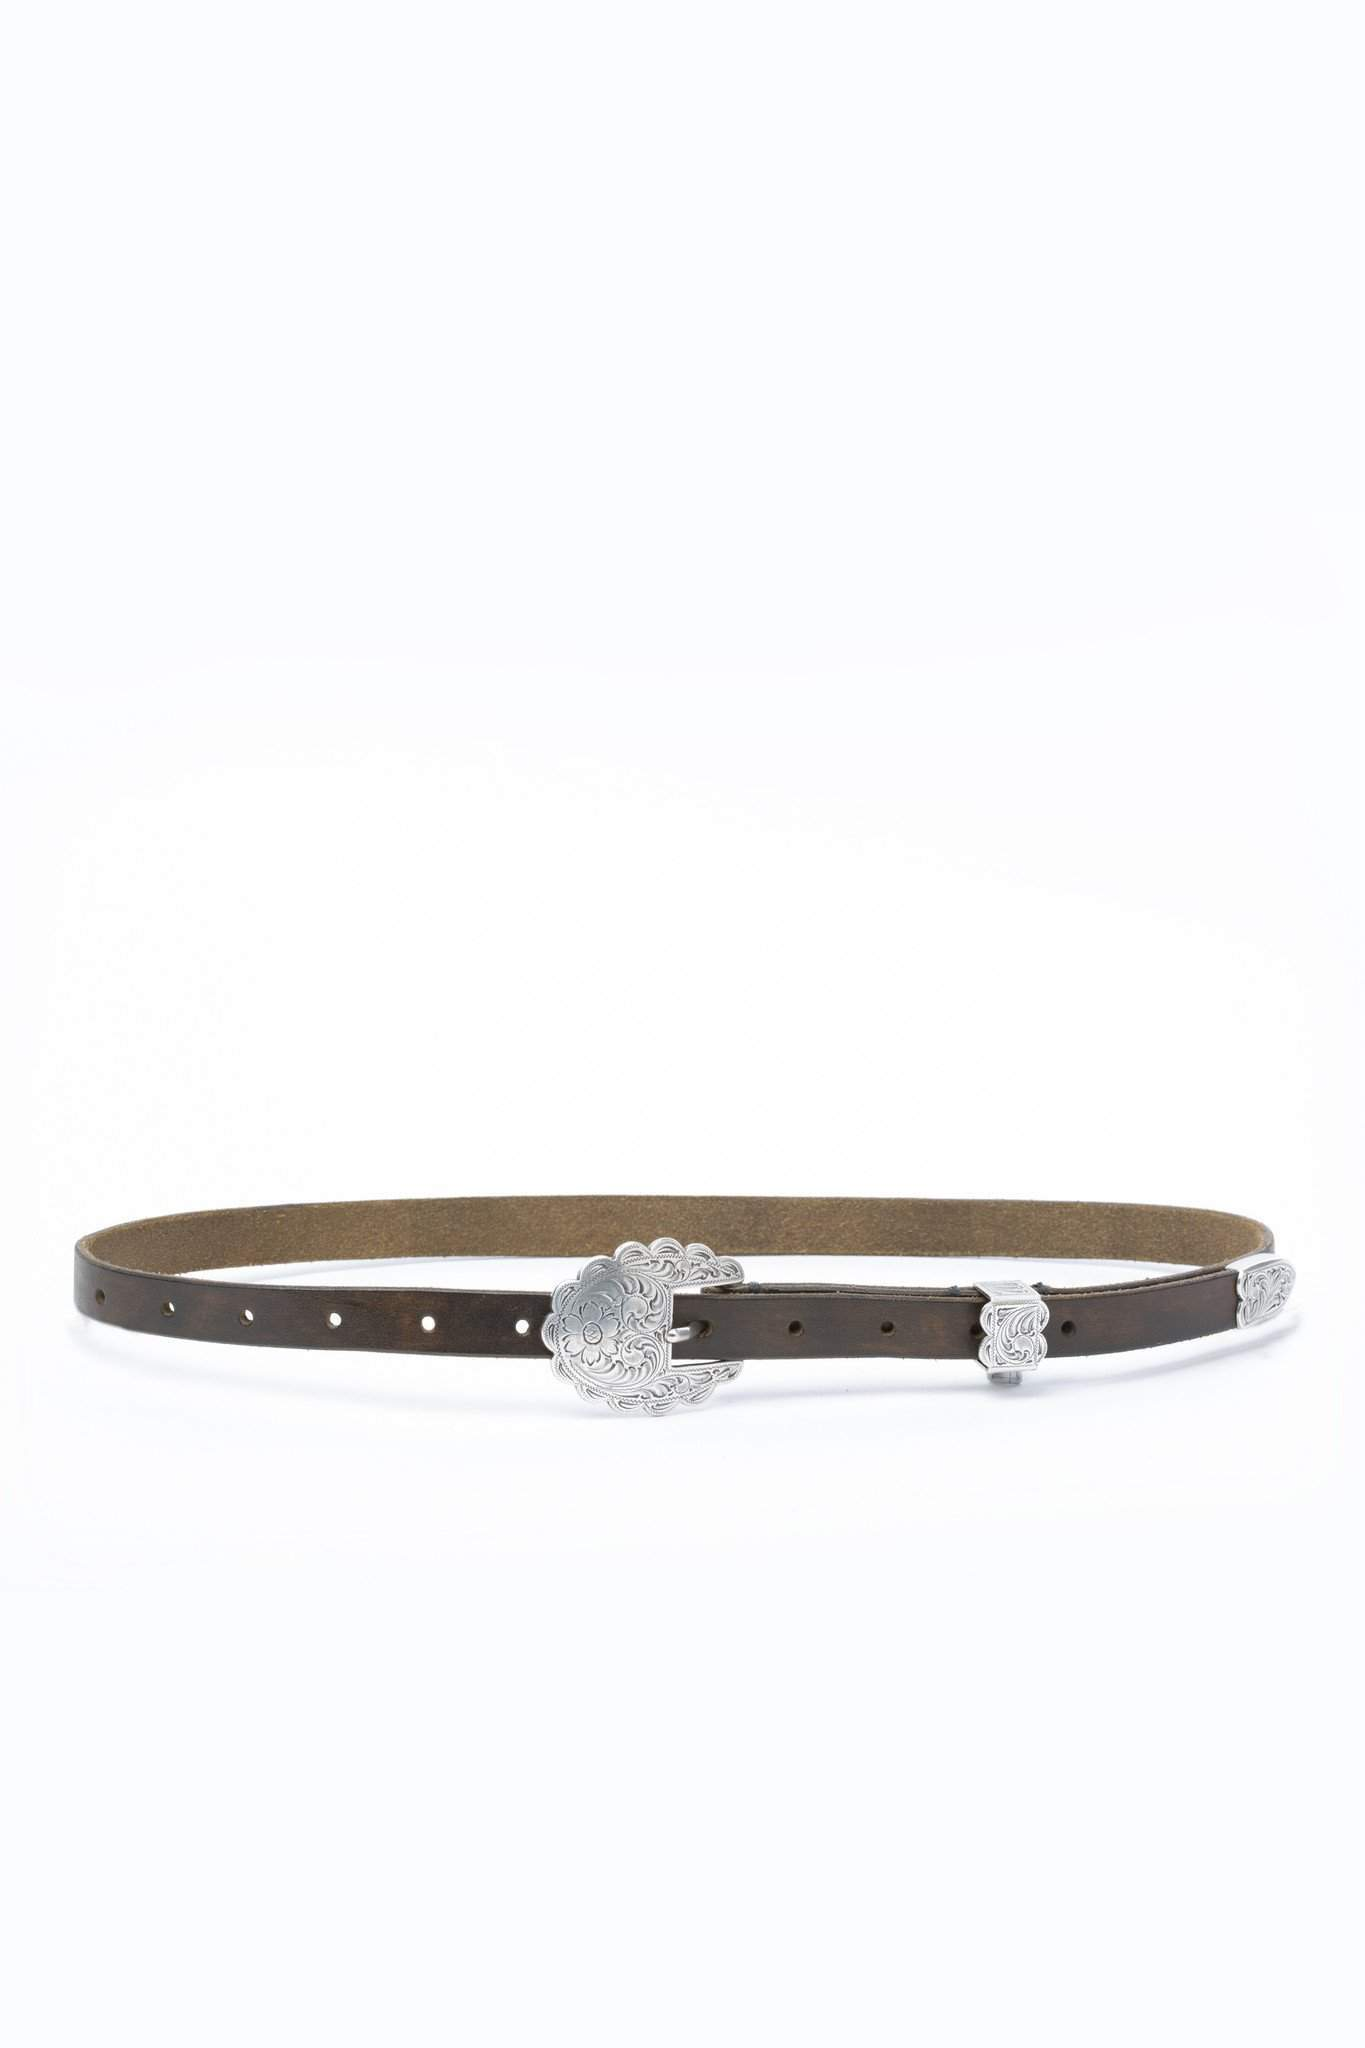 The Etched Silver Buckle Belt